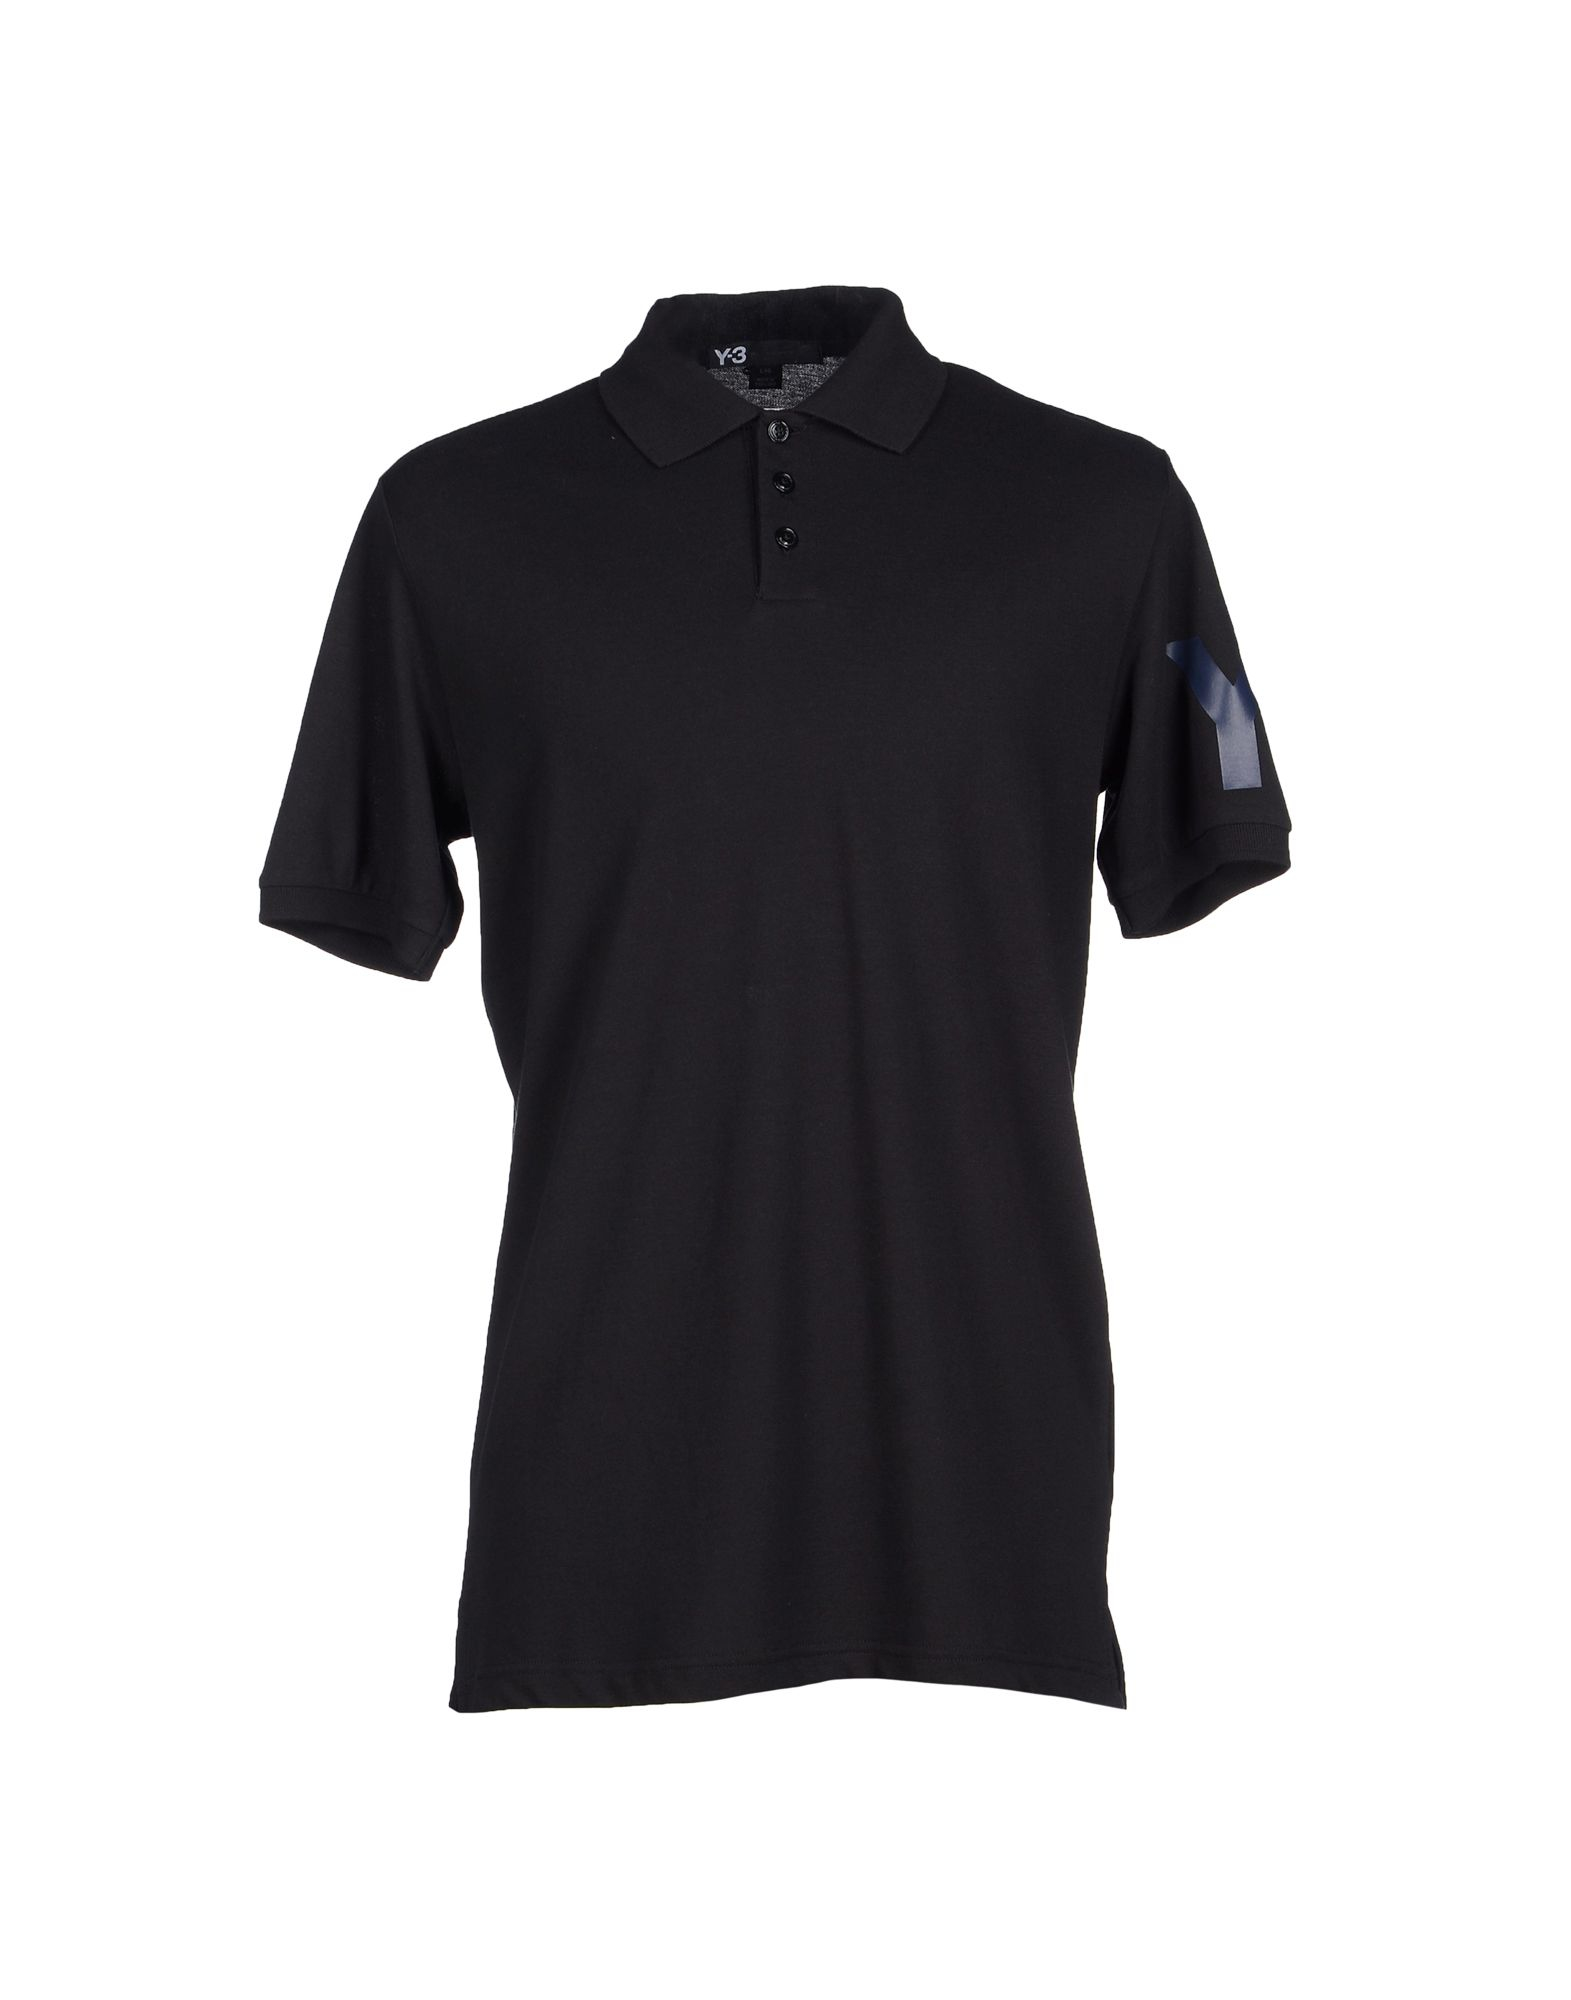 Lyst y 3 logo cotton polo shirt in black for men for Cotton polo shirts with logo